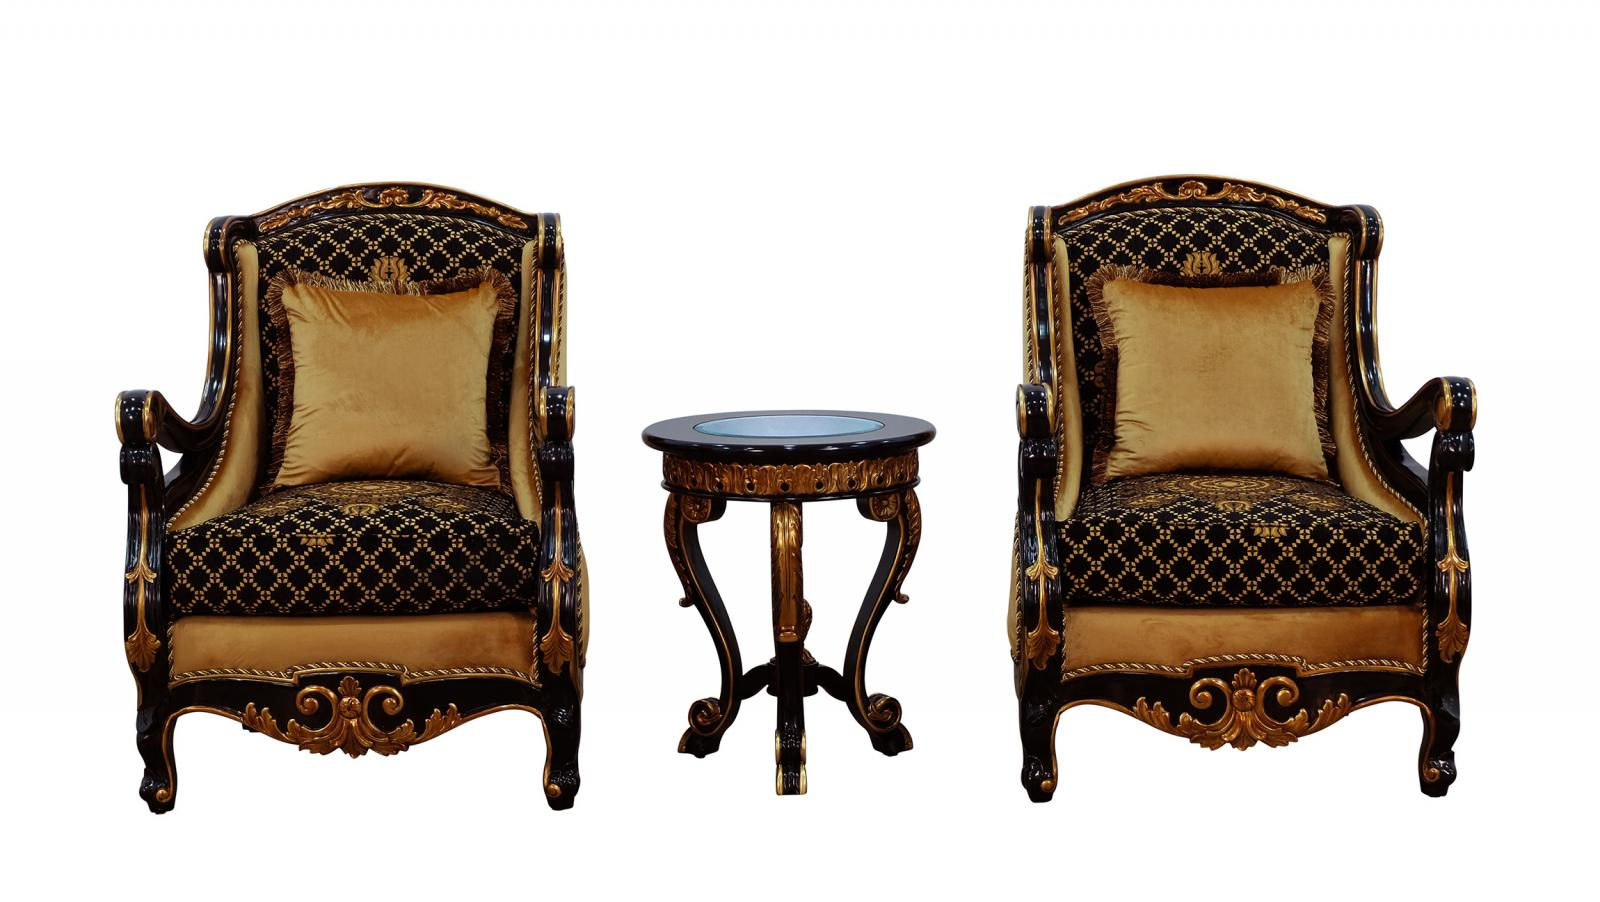 Classic  Traditional Gold  Silver  Antique   Black Wood  Solid Hardwood and Fabric Arm Chair Set EUROPEAN FURNITURE 41024-C-Set-2